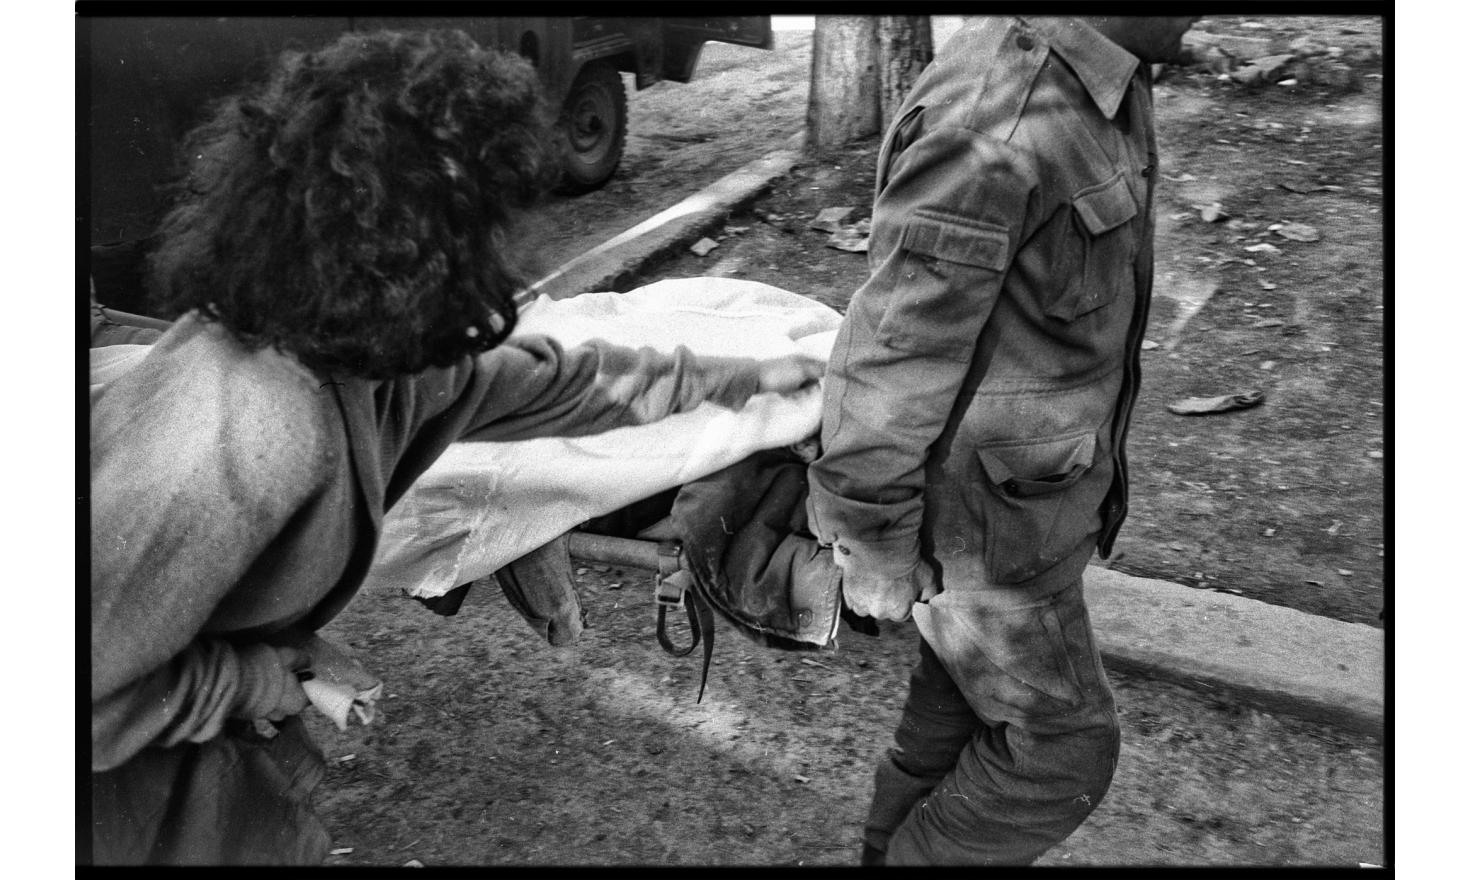 A woman is covering the face of a dead fighter. Stepanakaert, Nagorny Karabakh. 04-1994